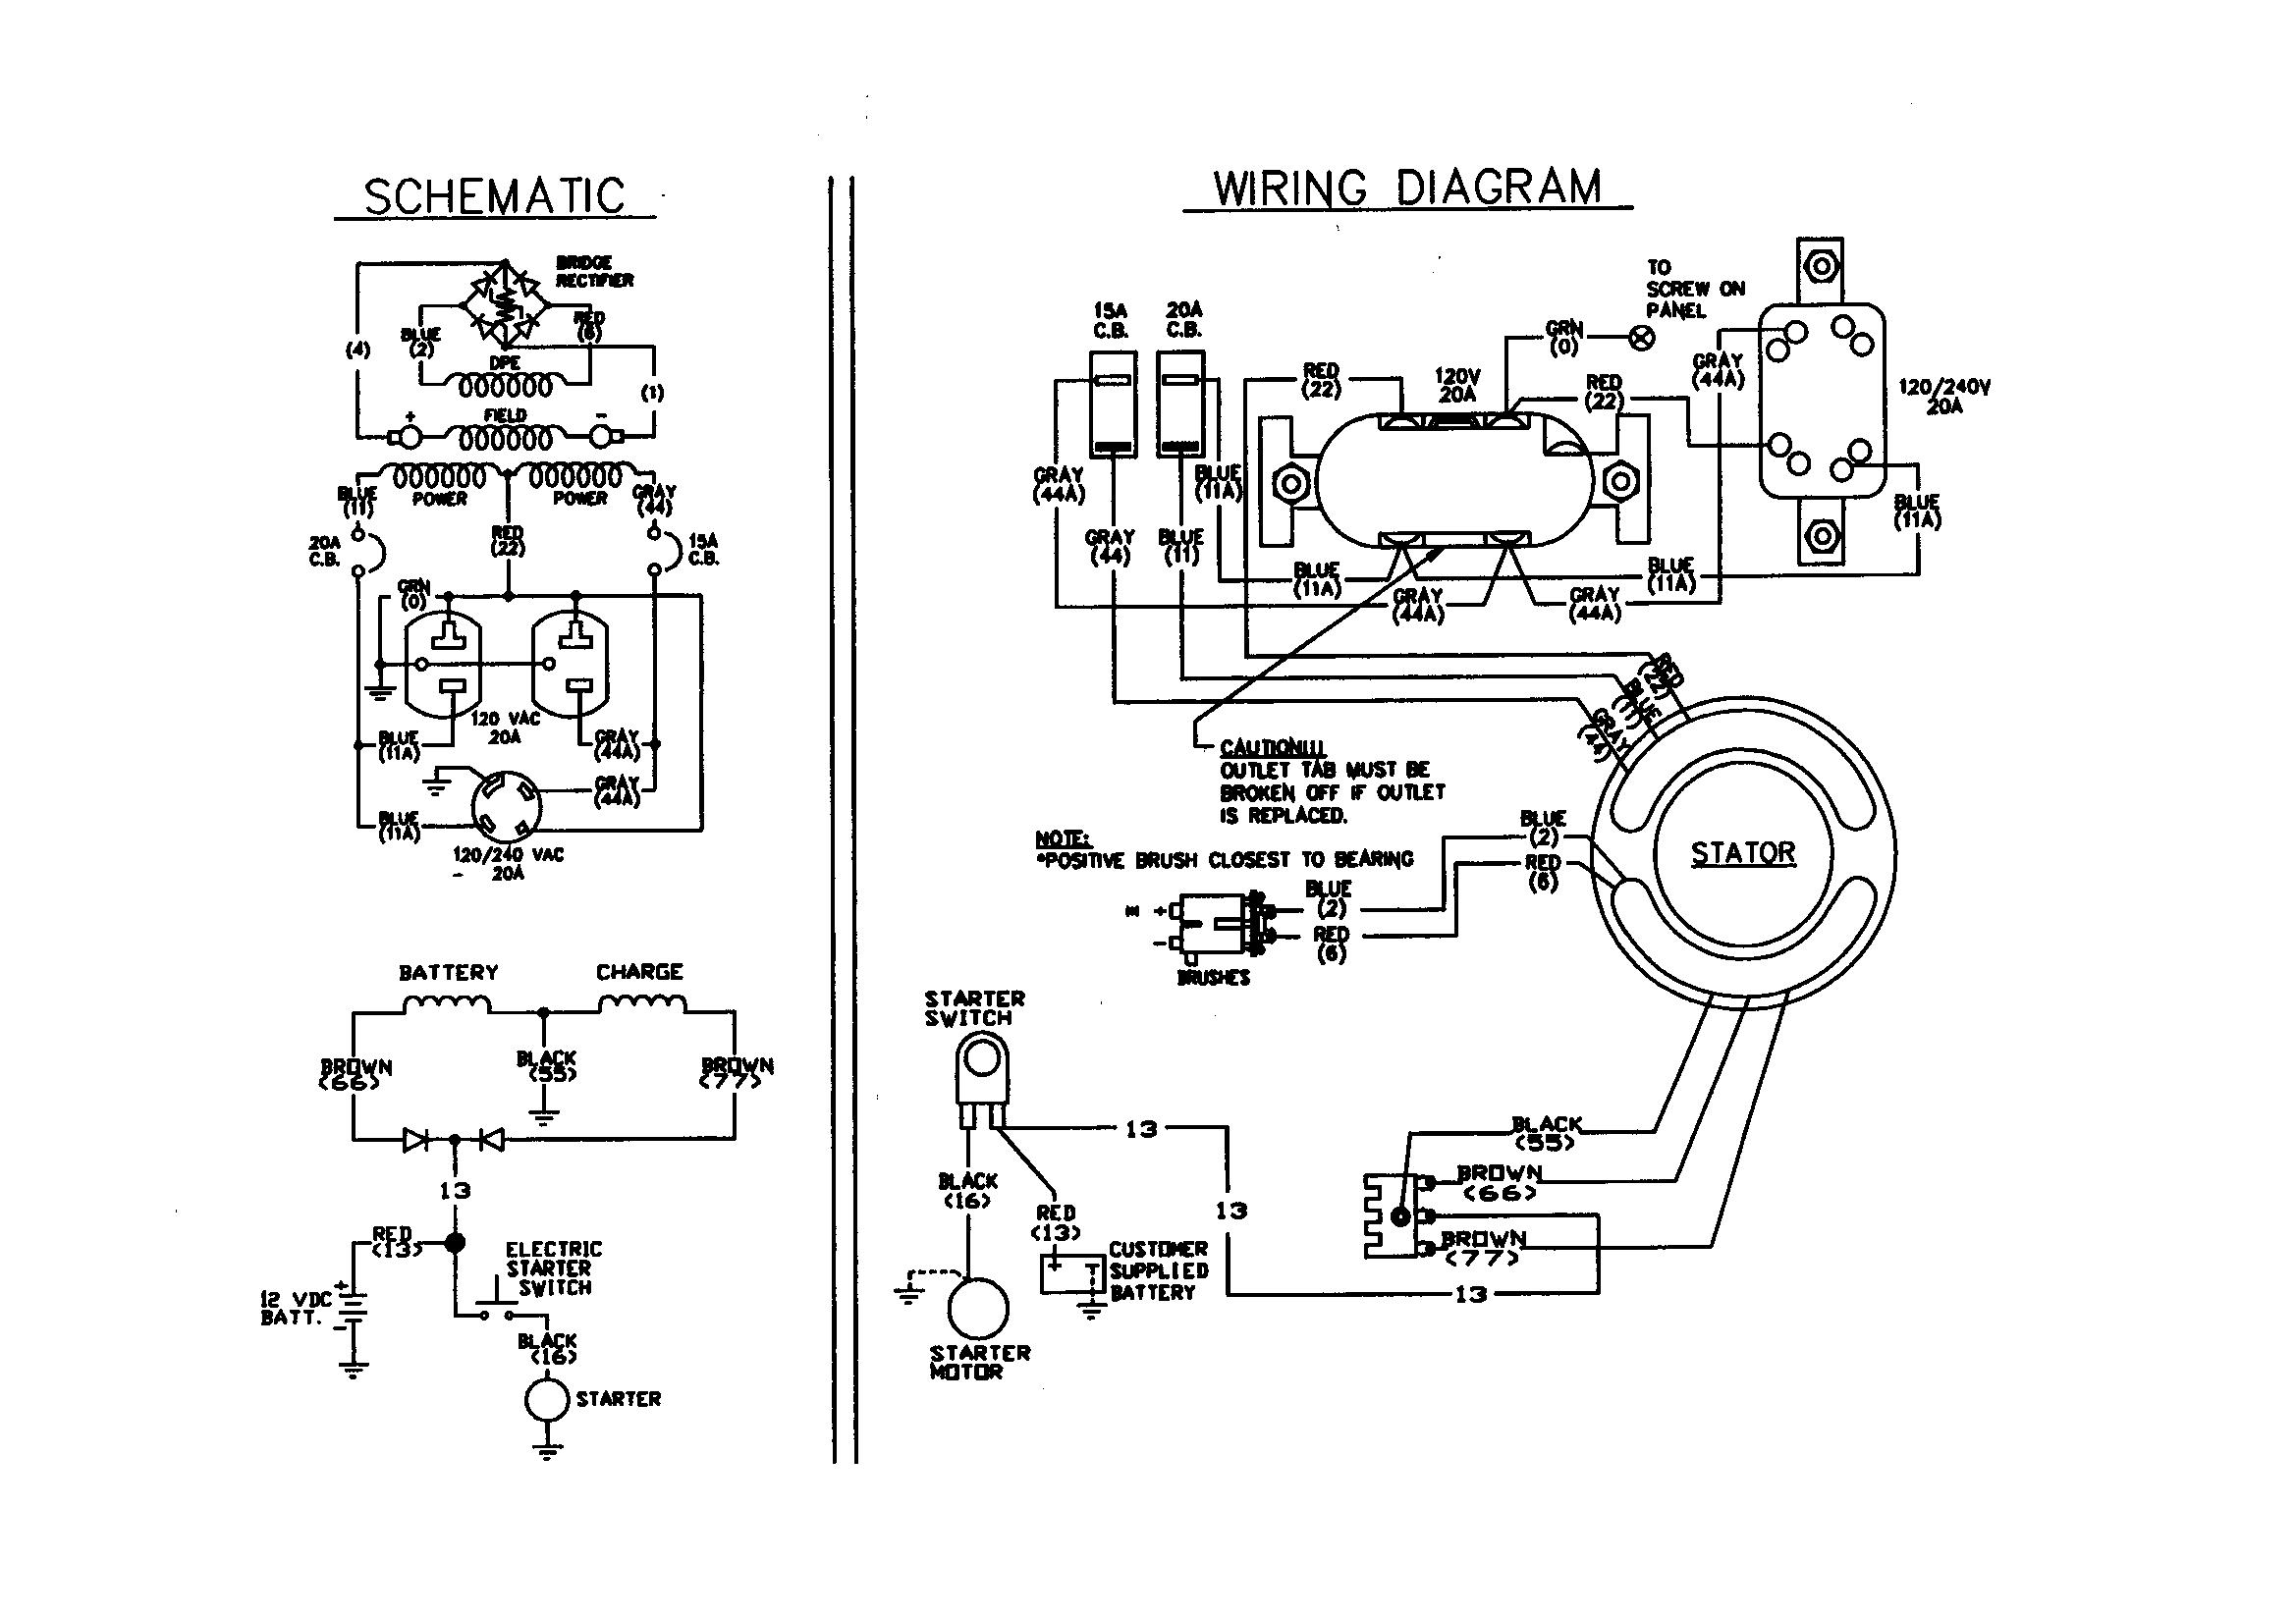 WIRING DIAGRAM/SCHEMATIC Diagram & Parts List for Model